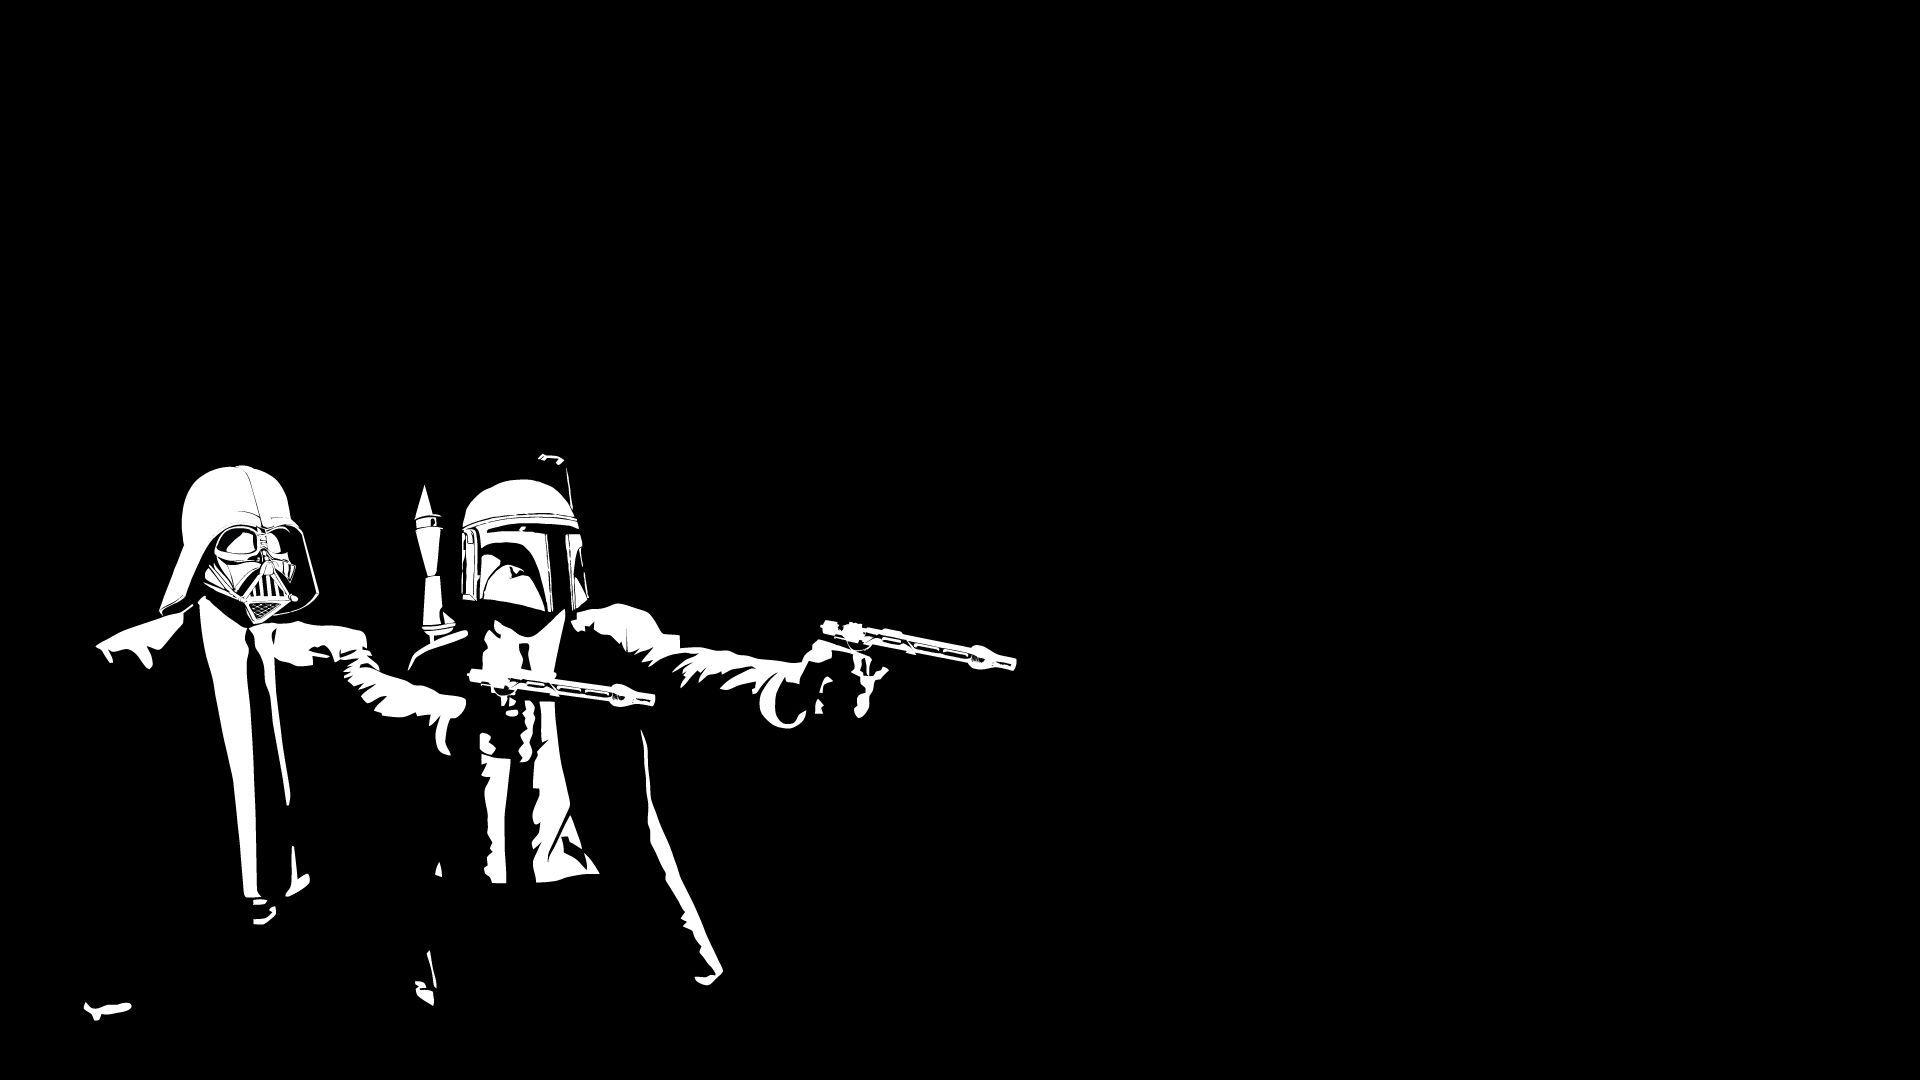 Star Wars Pulp Fiction Wallpaper - WallpaperSafari